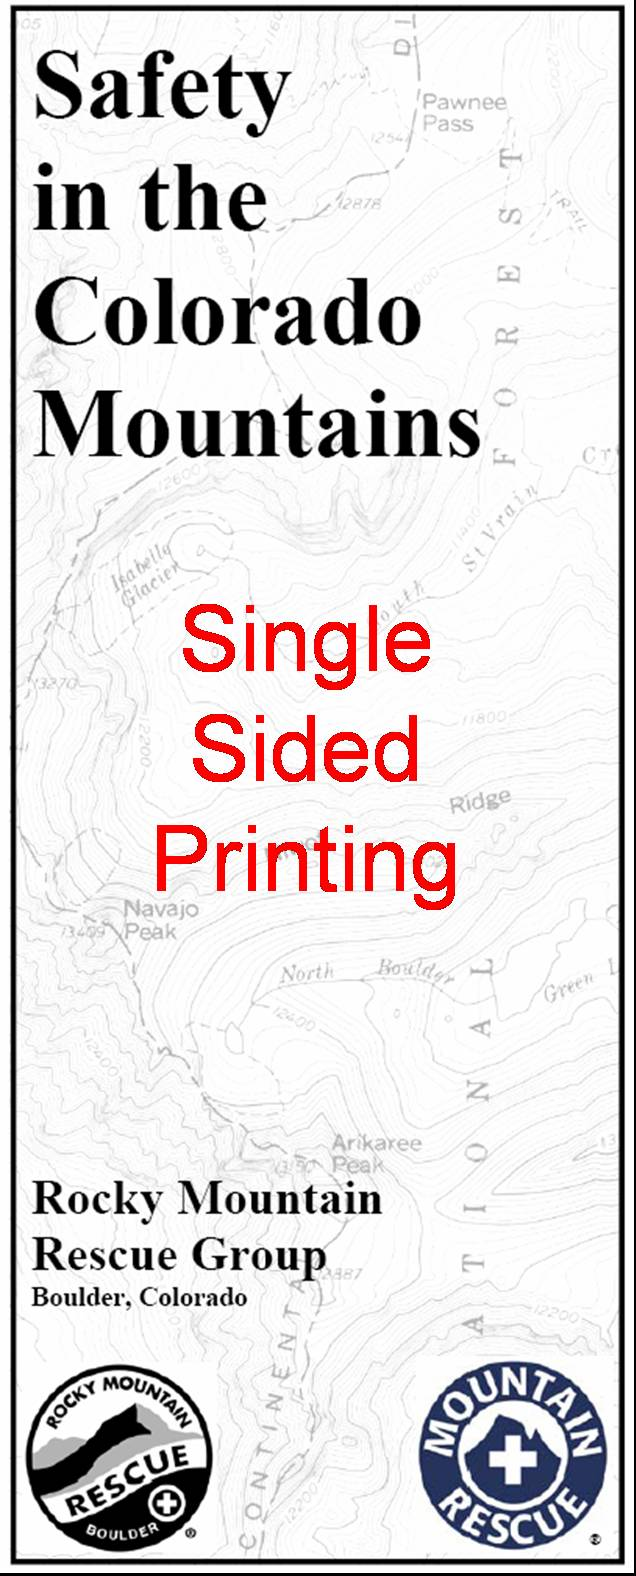 Single sided